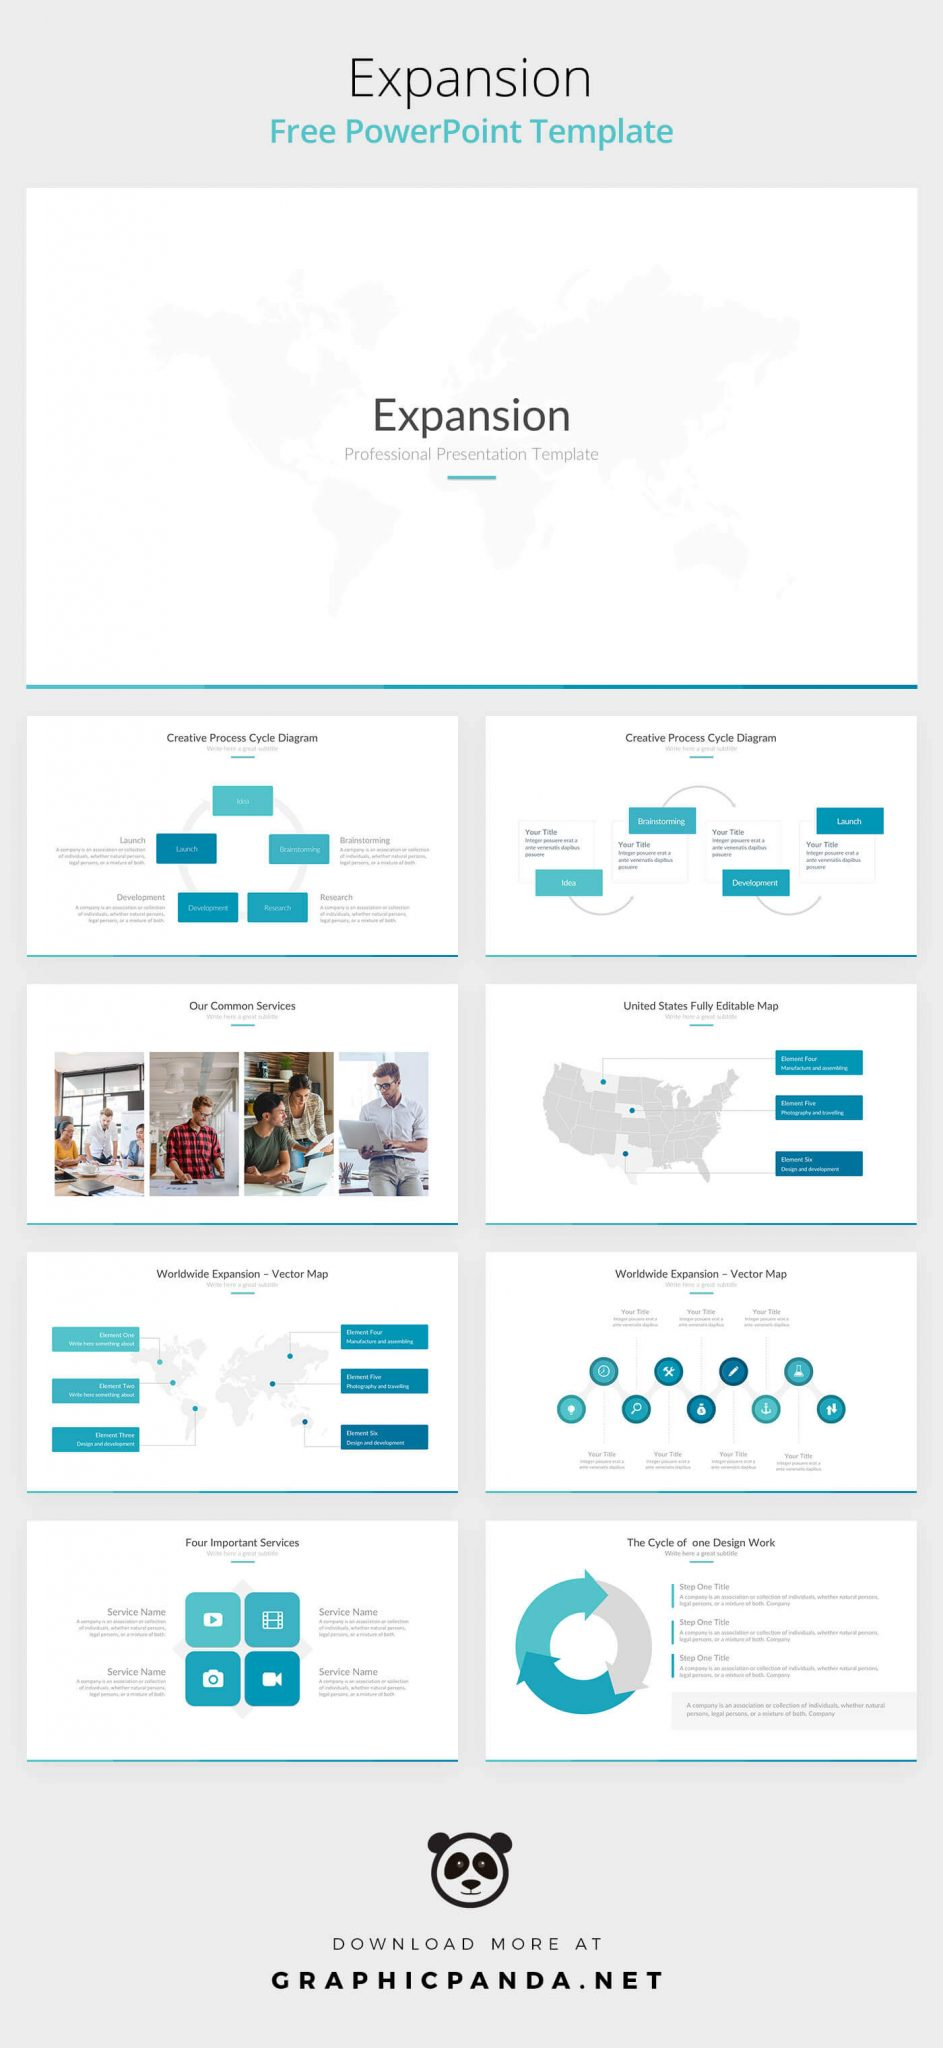 Expansion free powerpoint templates ready to use free powerpoint template alramifo Images